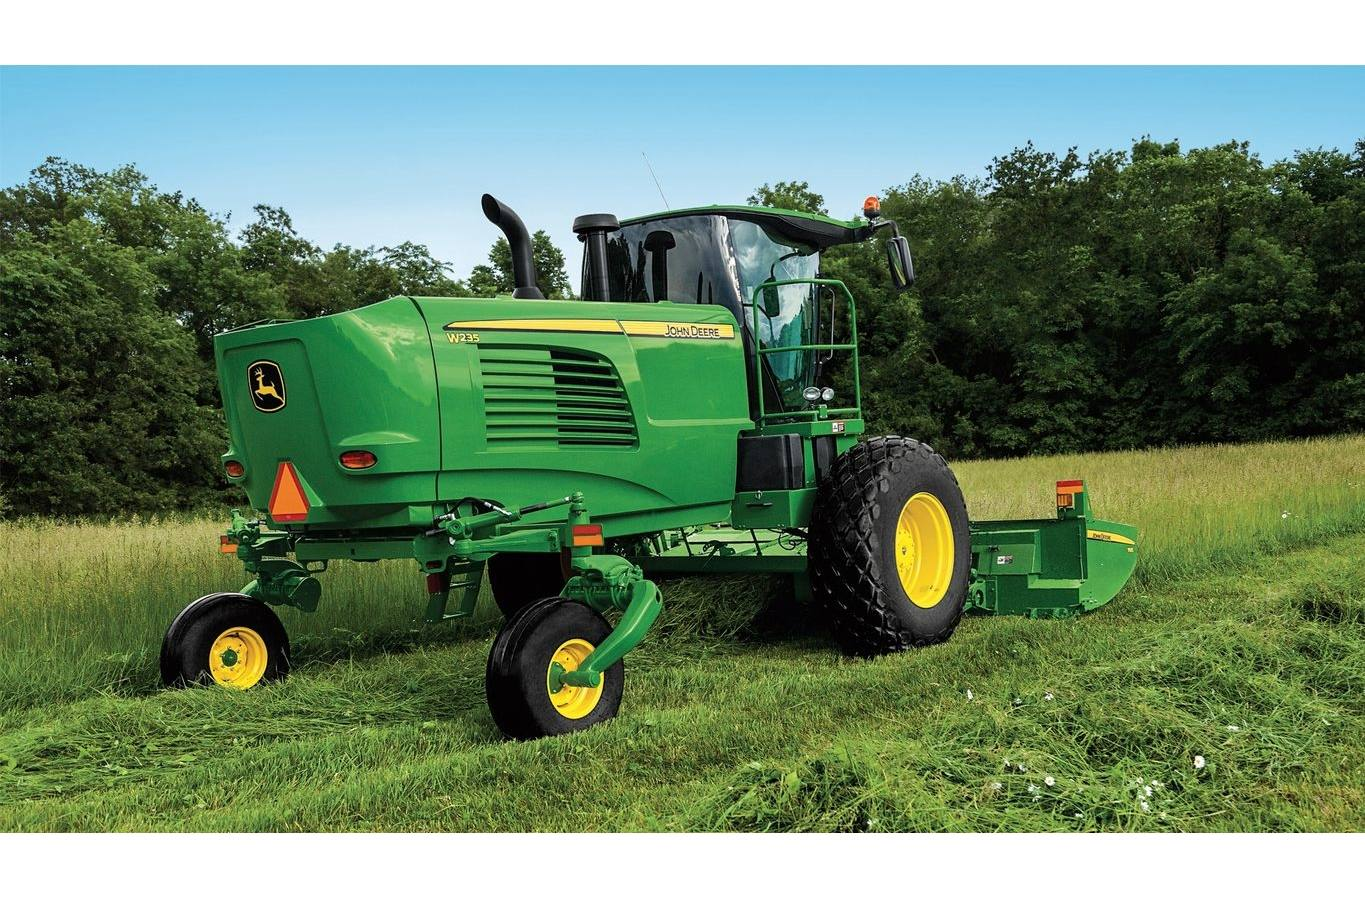 2019 John Deere W235 for sale in Douglasville, GA  Dowda